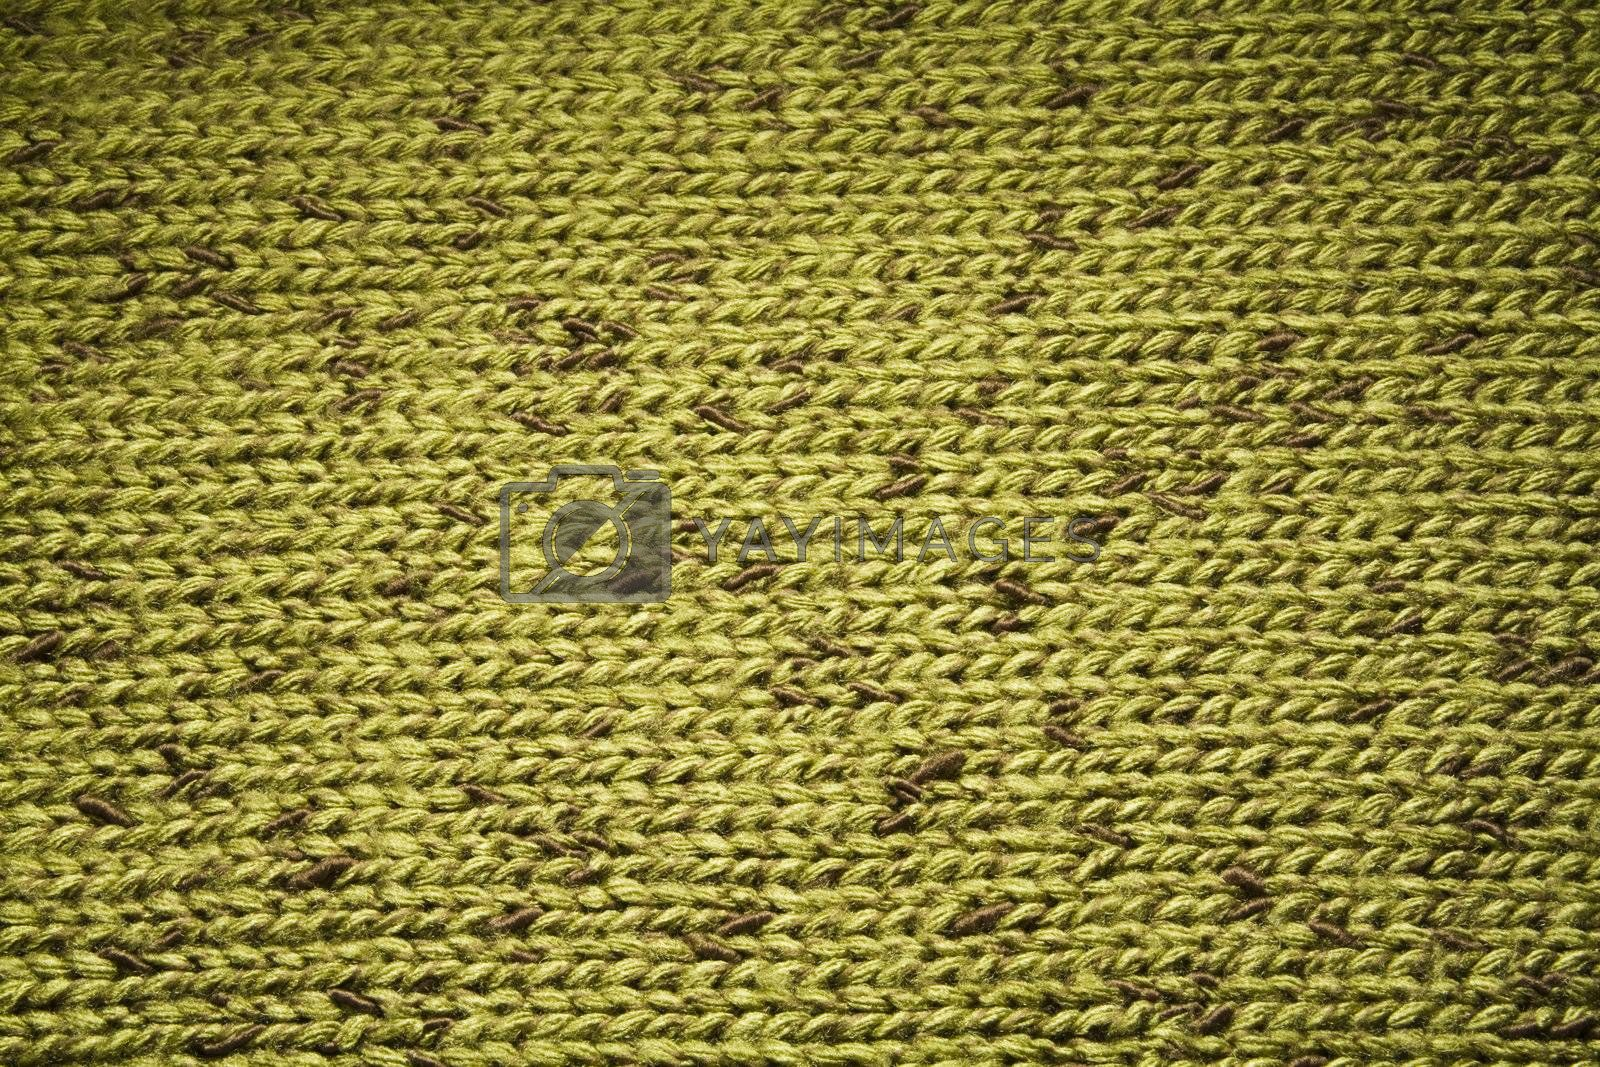 Textile Background - macro of a woolen texture